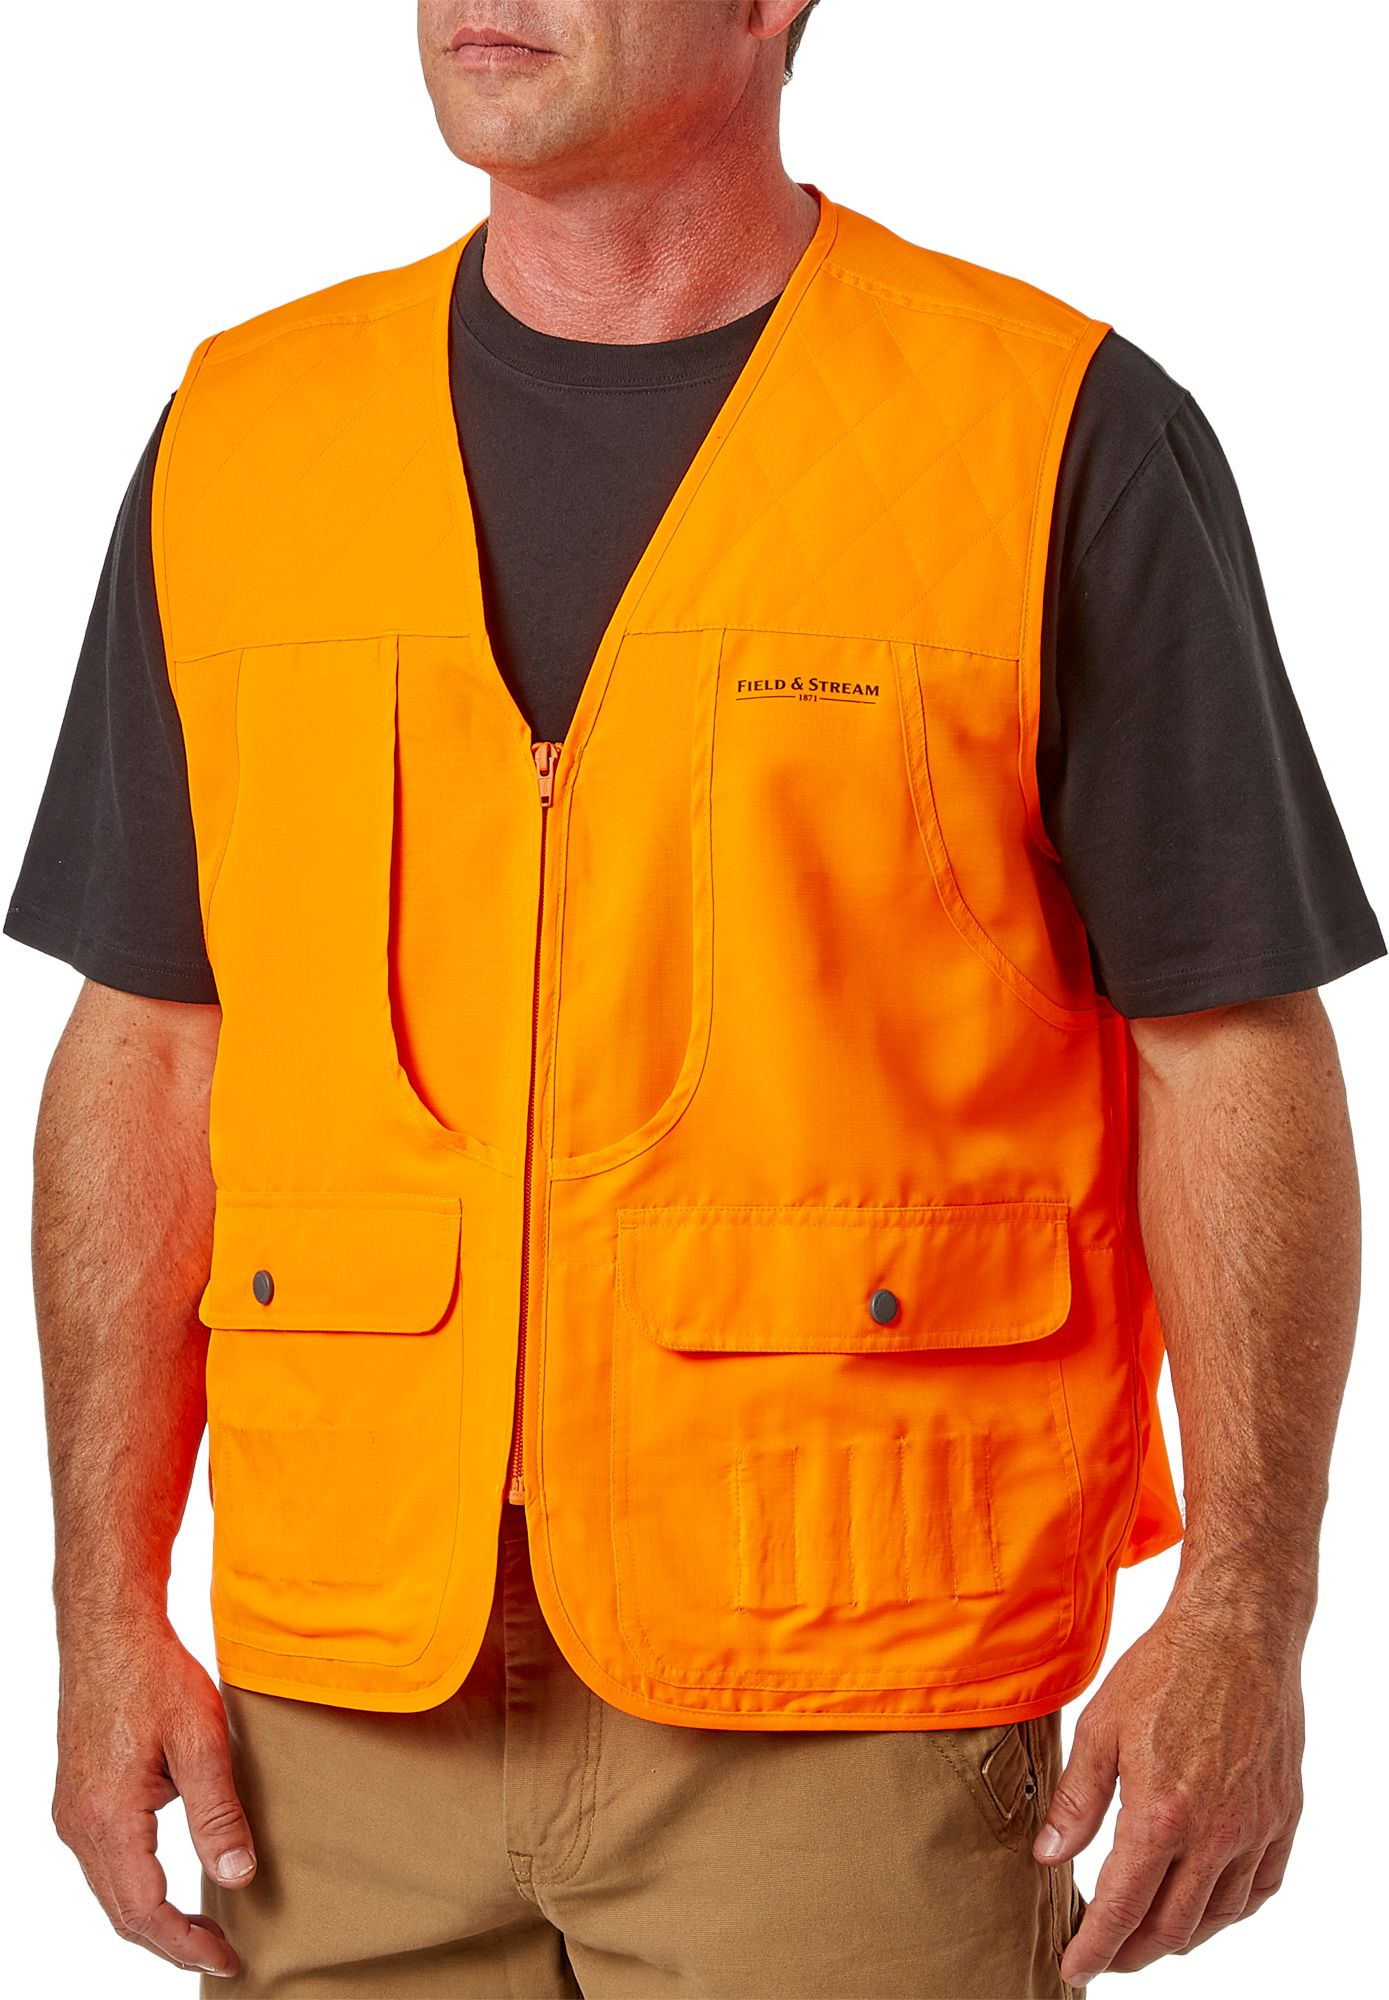 Field & Stream Men's Blaze Orange Front Loader Hunting Vest, Size: XXXL thumbnail